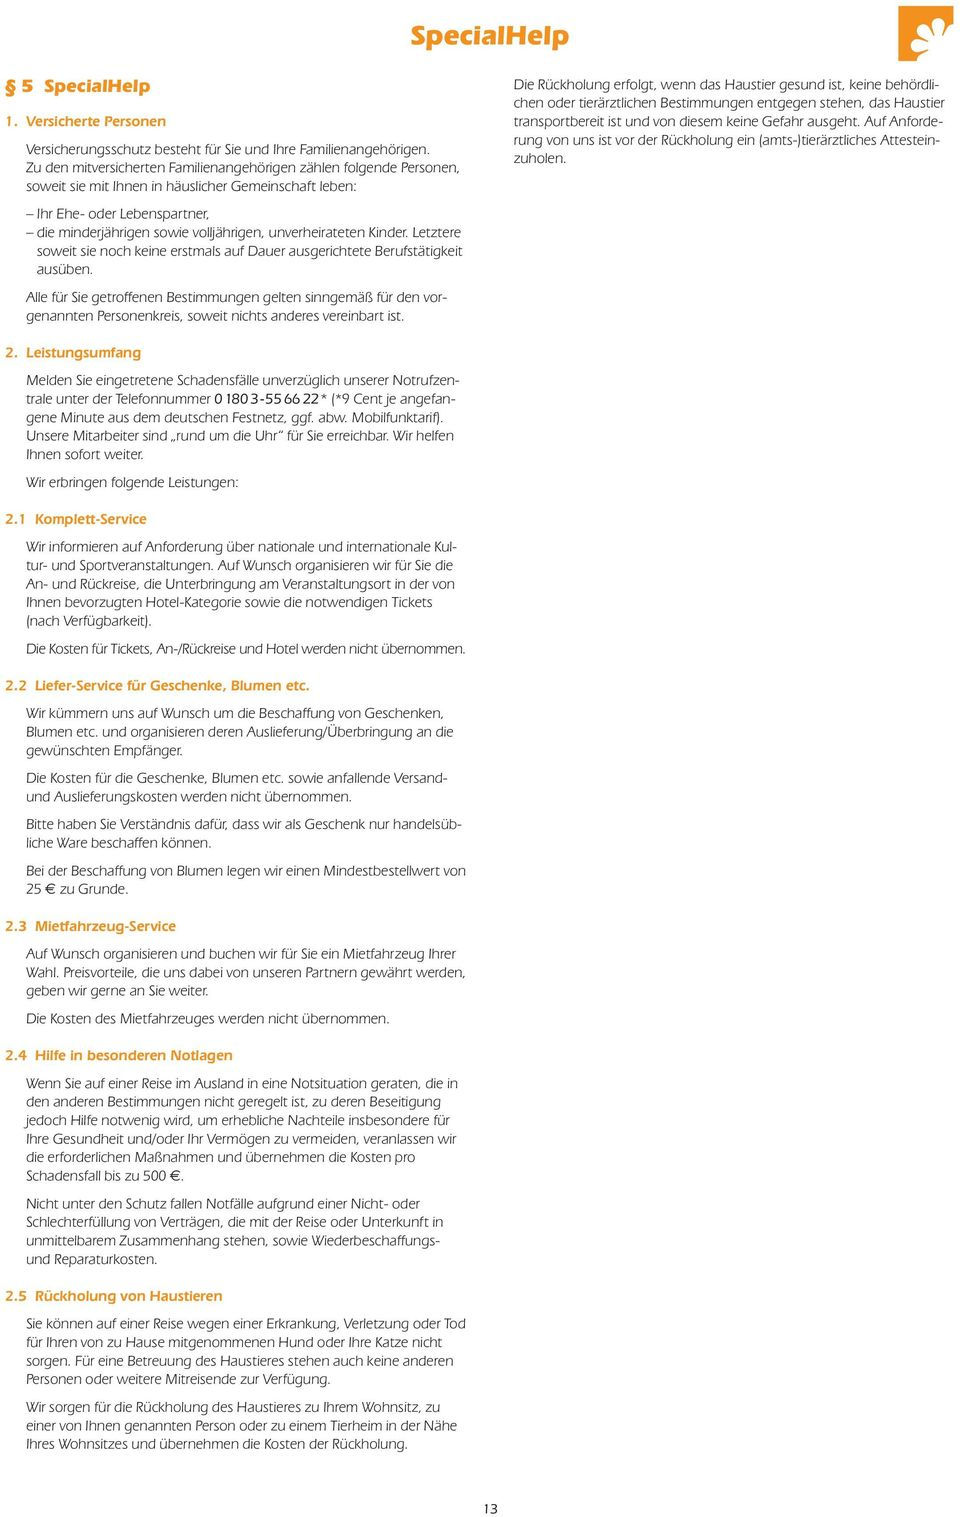 Charmant Preis Ticket Vorlage Bilder - Entry Level Resume Vorlagen ...